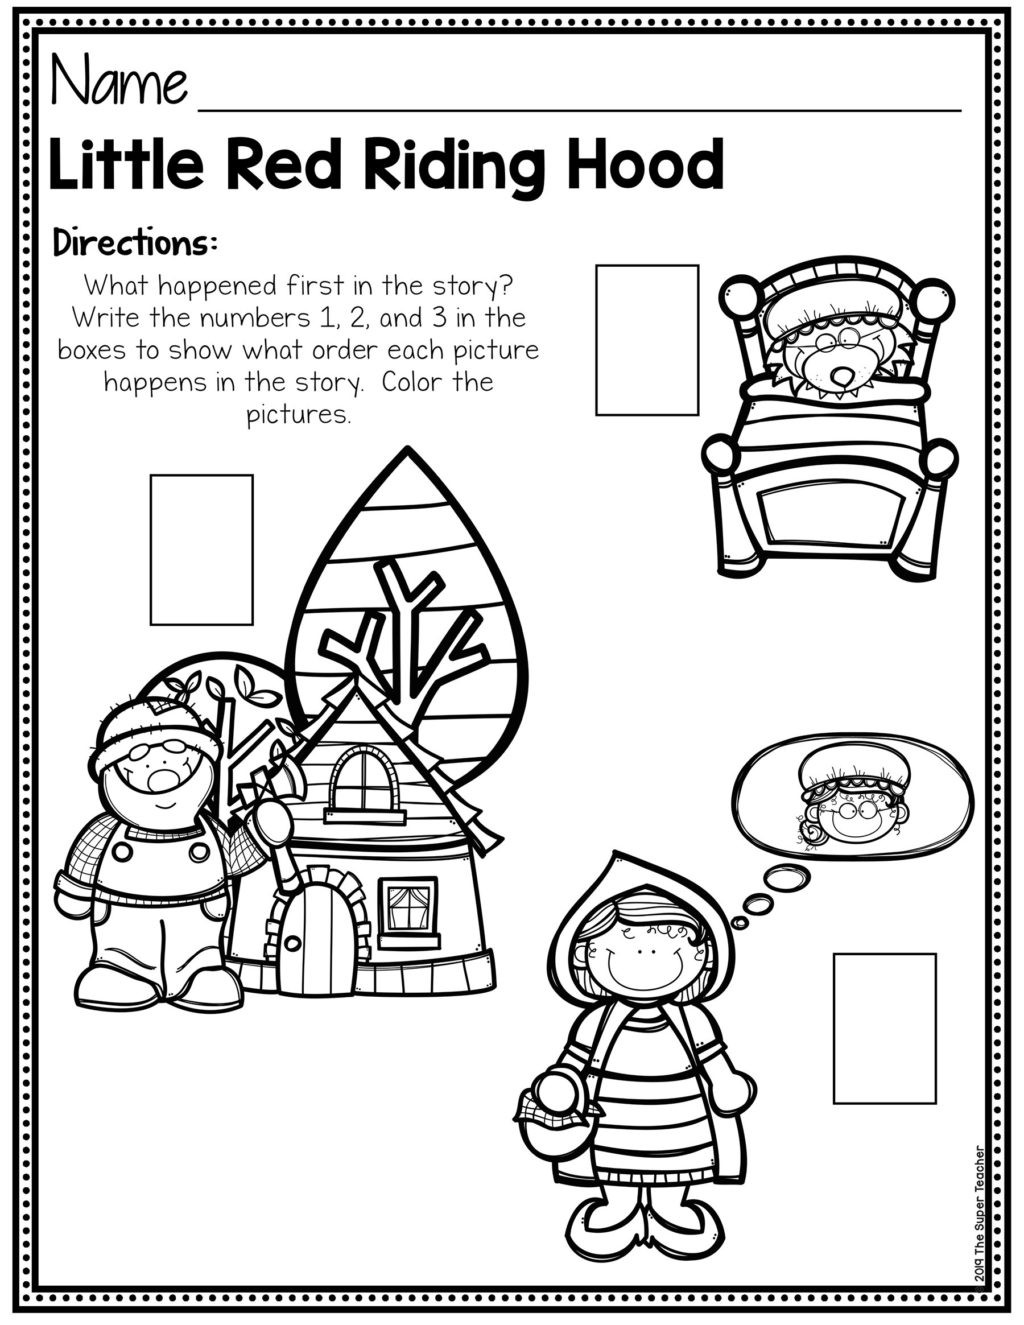 Initial Letter Sound Worksheet